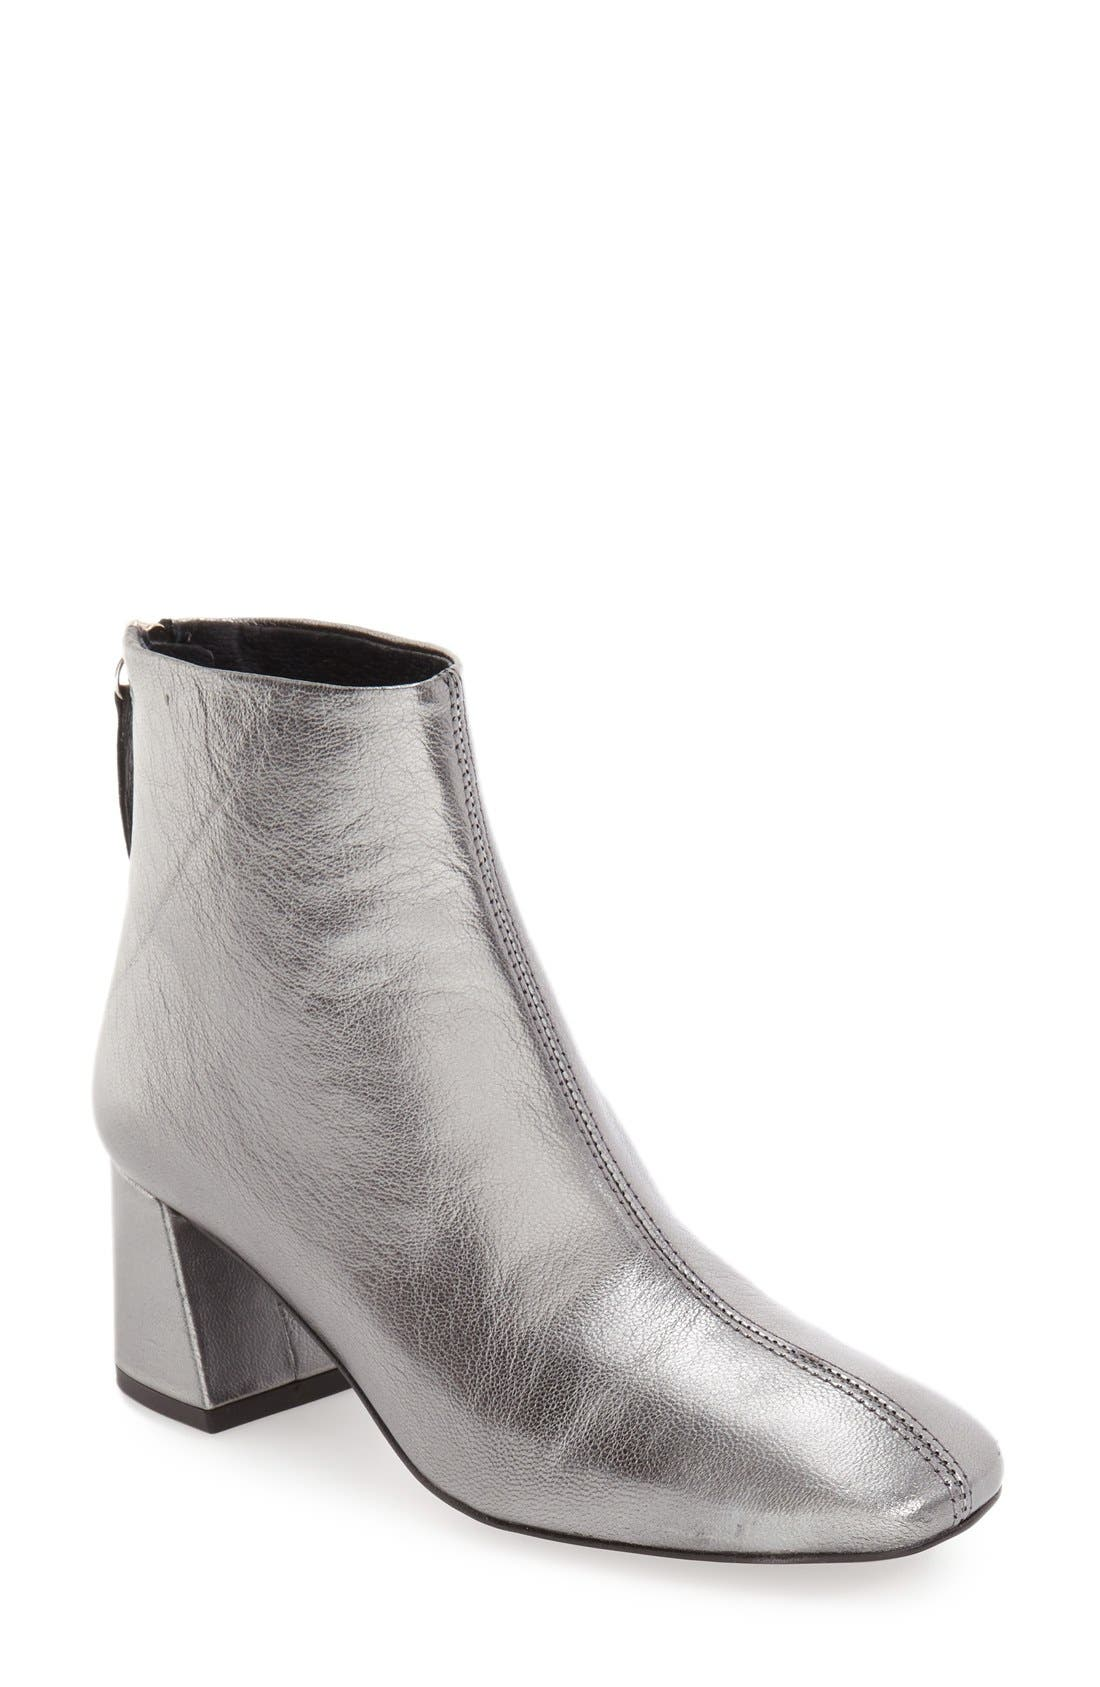 'Maggie' Flared Heel Bootie,                         Main,                         color, Silver